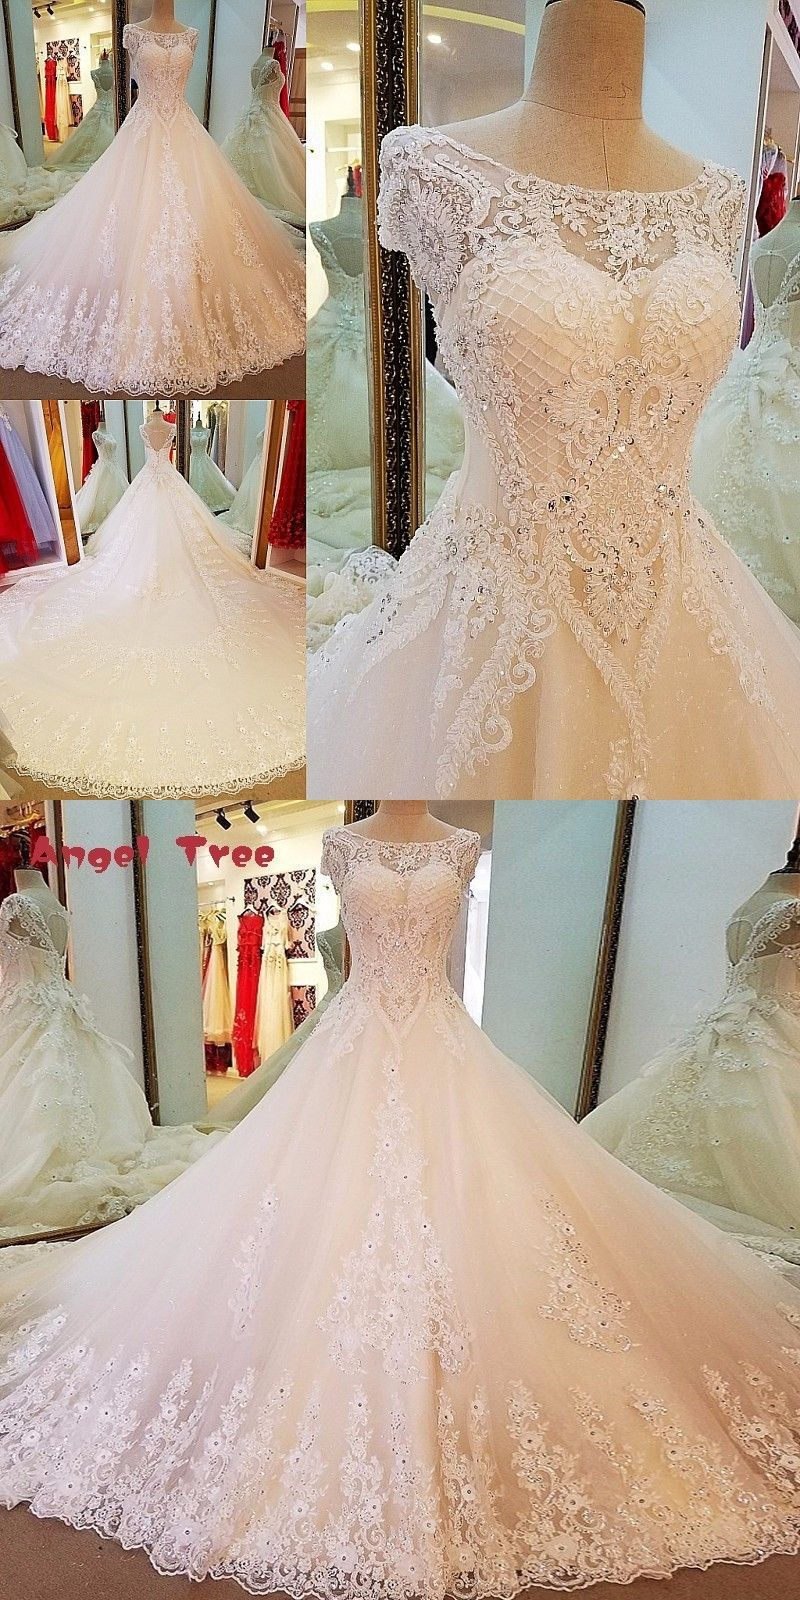 Angel tree long tail wedding dress ball gown lace up back short